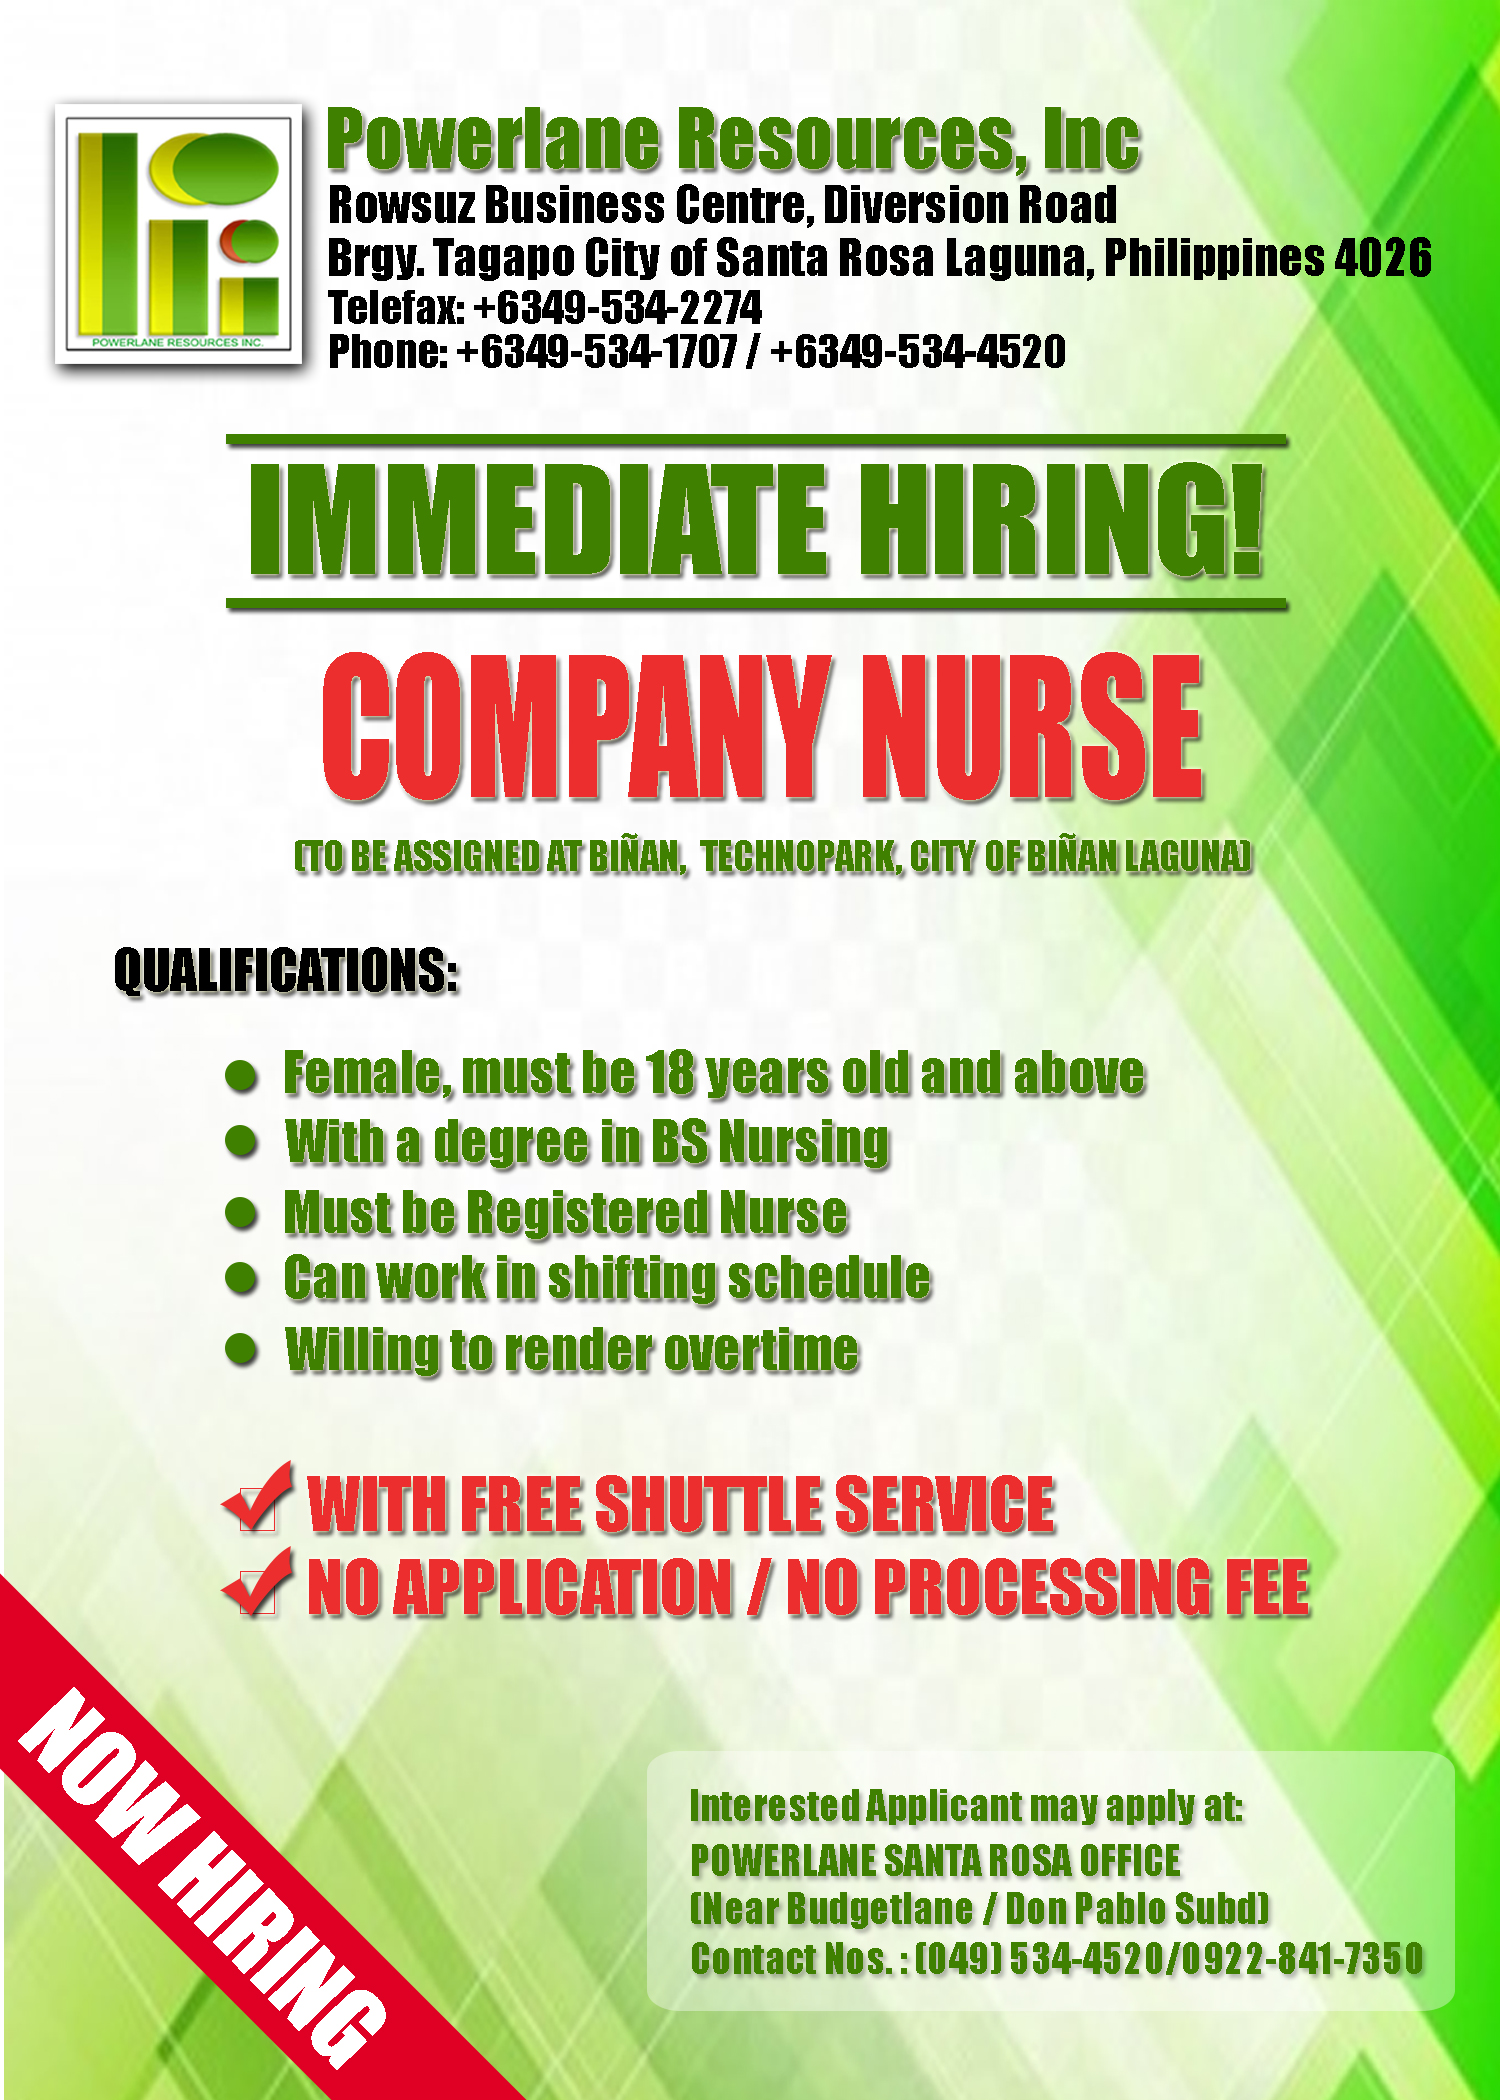 Company Nurse from Powerlane Resources Inc.